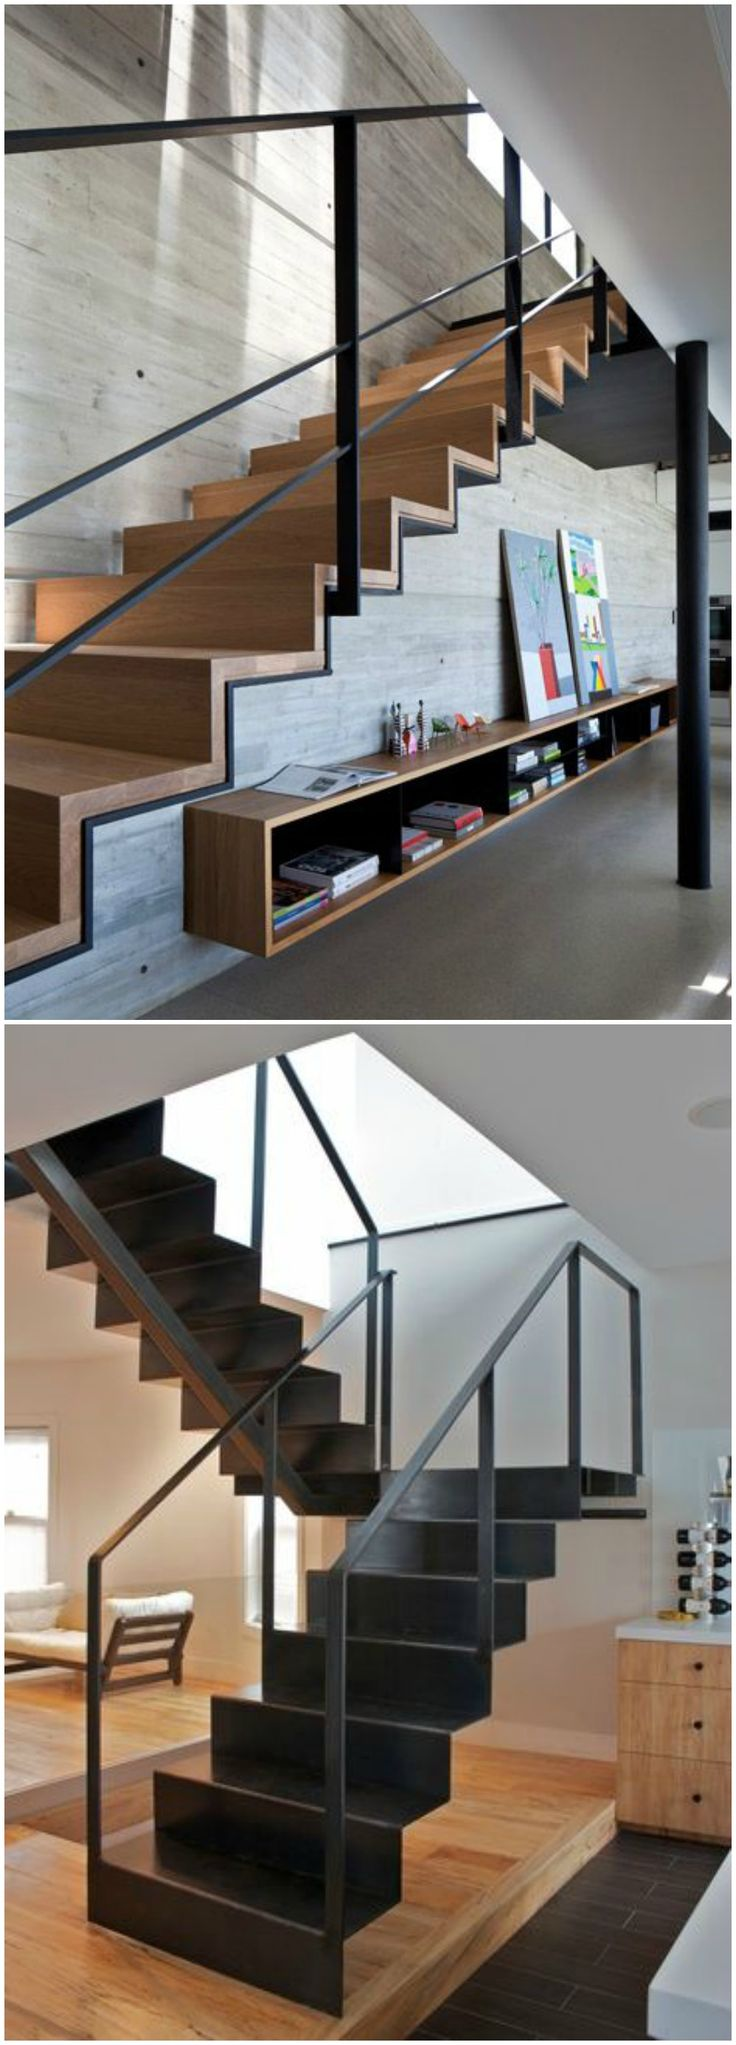 Las 25 mejores ideas sobre escaleras interiores en for Escaleras metalicas para interiores de casas